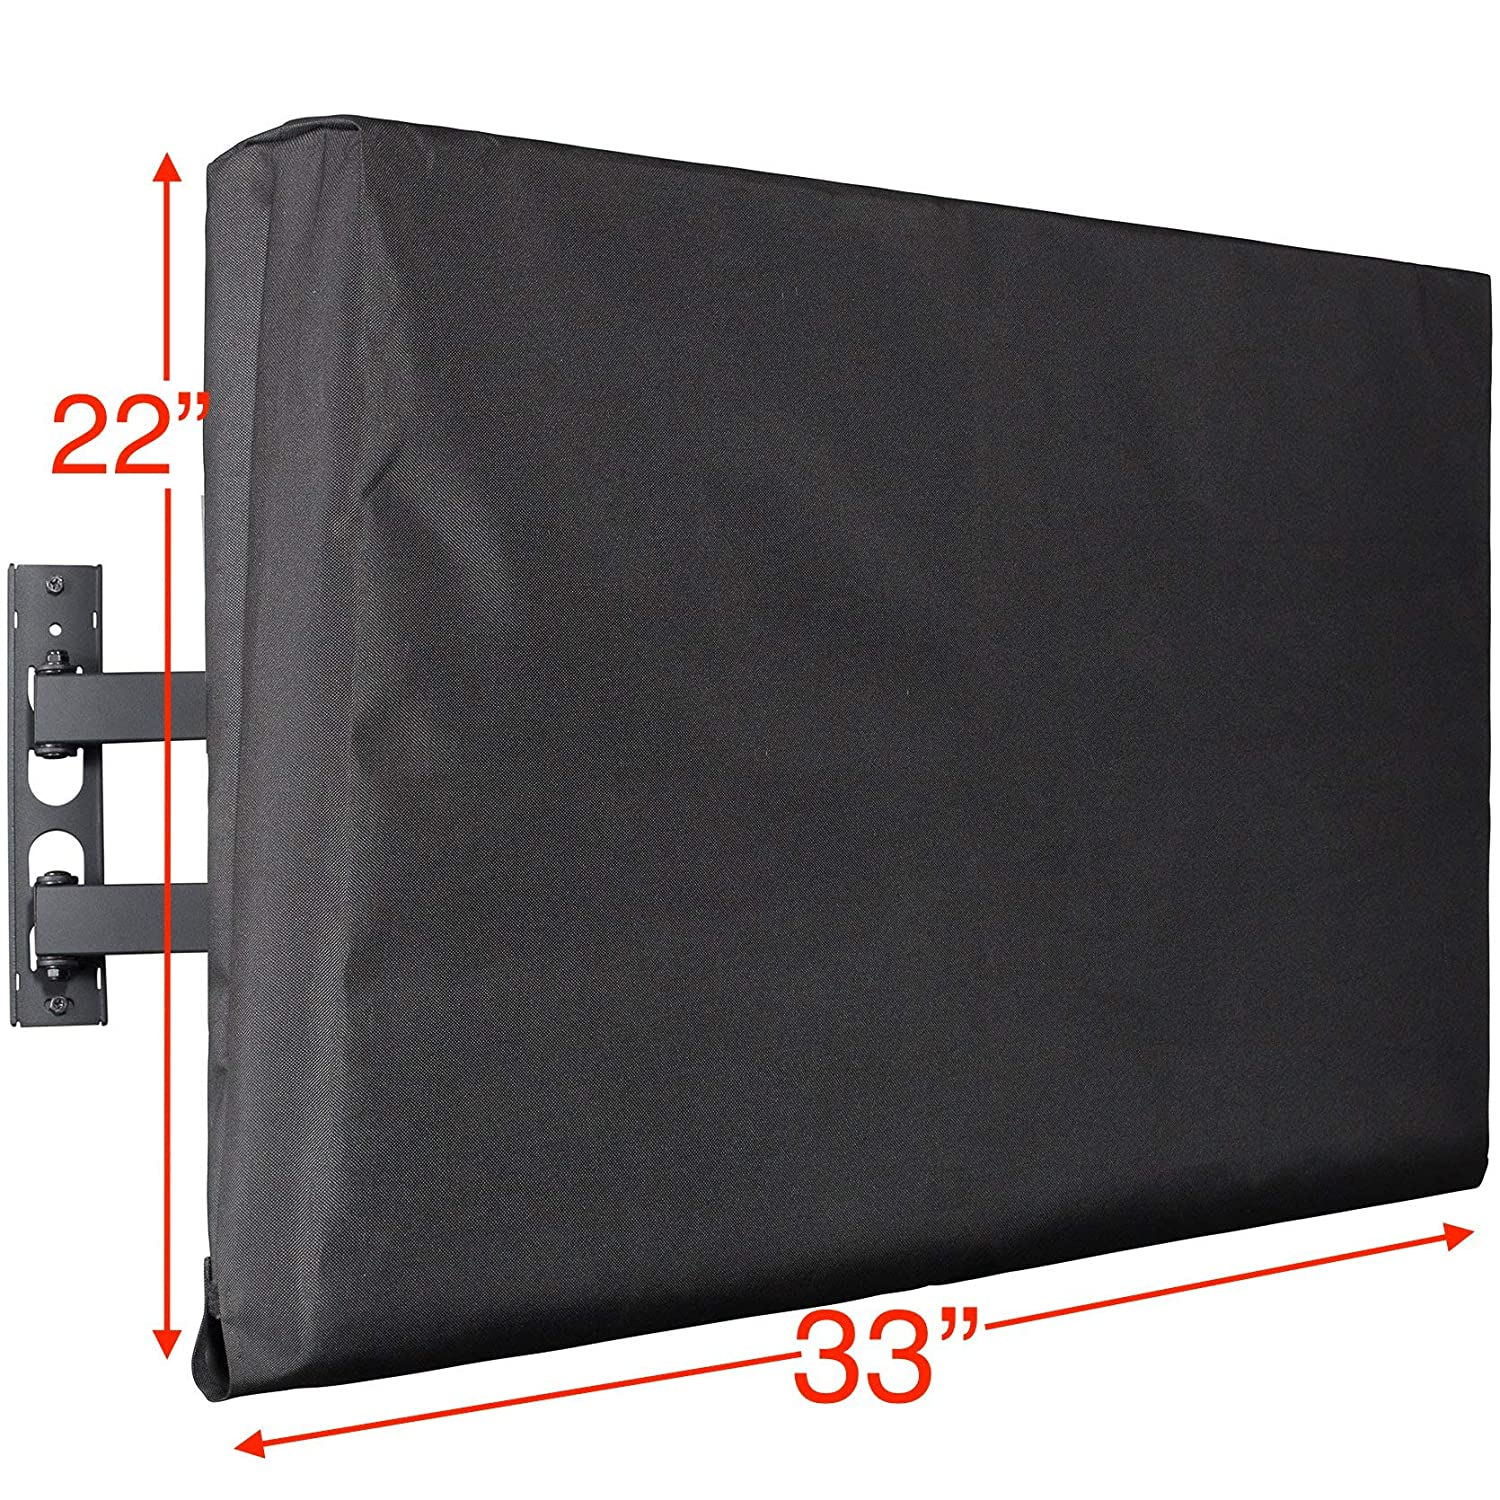 Kuzy TV Cover 32', Display Weatherproof Outdoor TV Cover Protector for Flat Screen up to 32-inch - Fits Most TV Mounts, LCD, LED, Plasma Screens, Made in USA - BLACK …